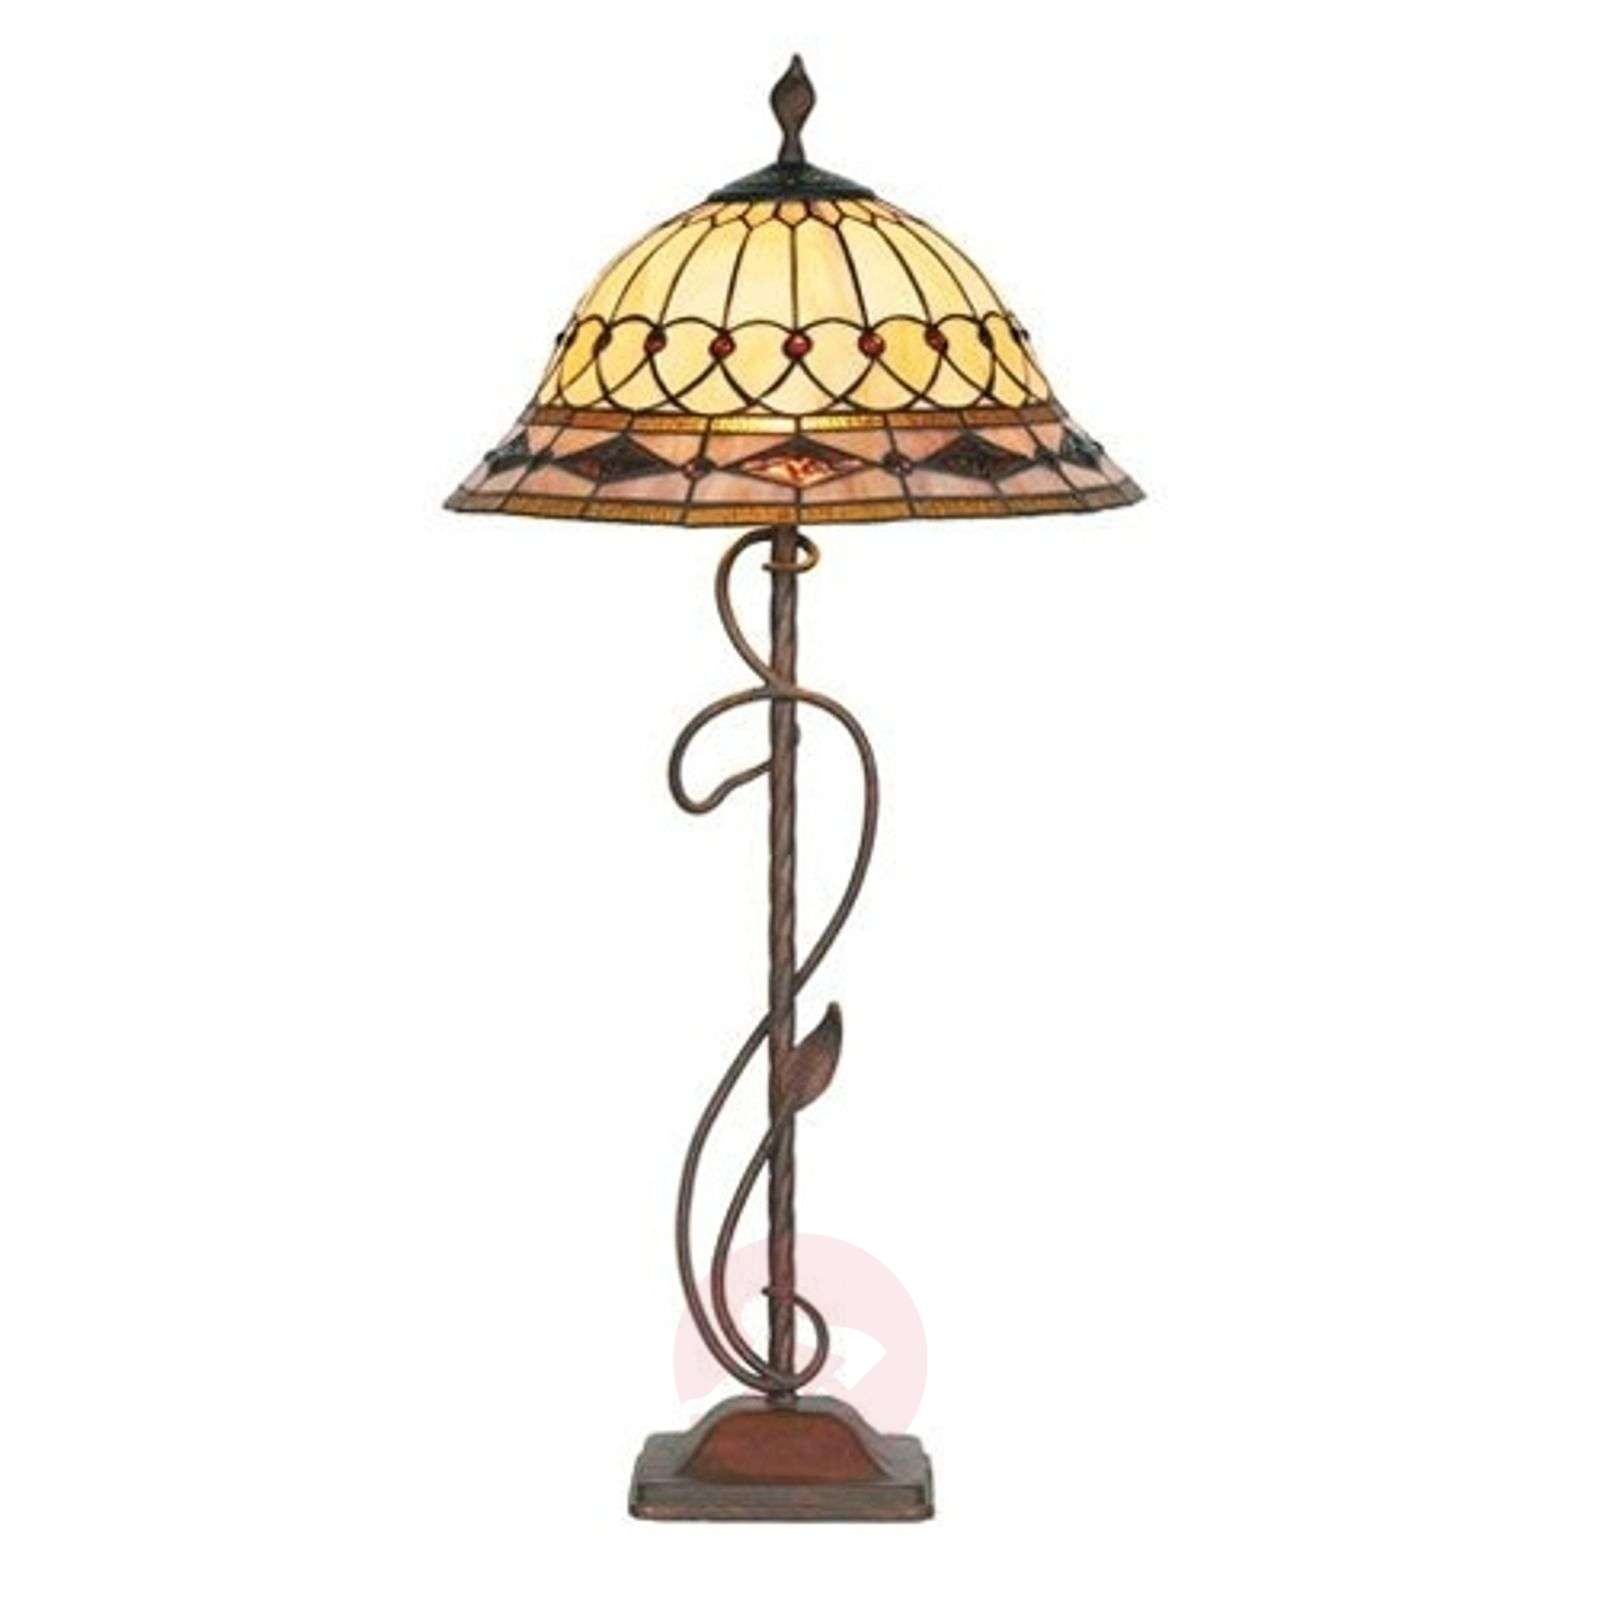 Decorative floor lamp KASSANDRA-1032115-01